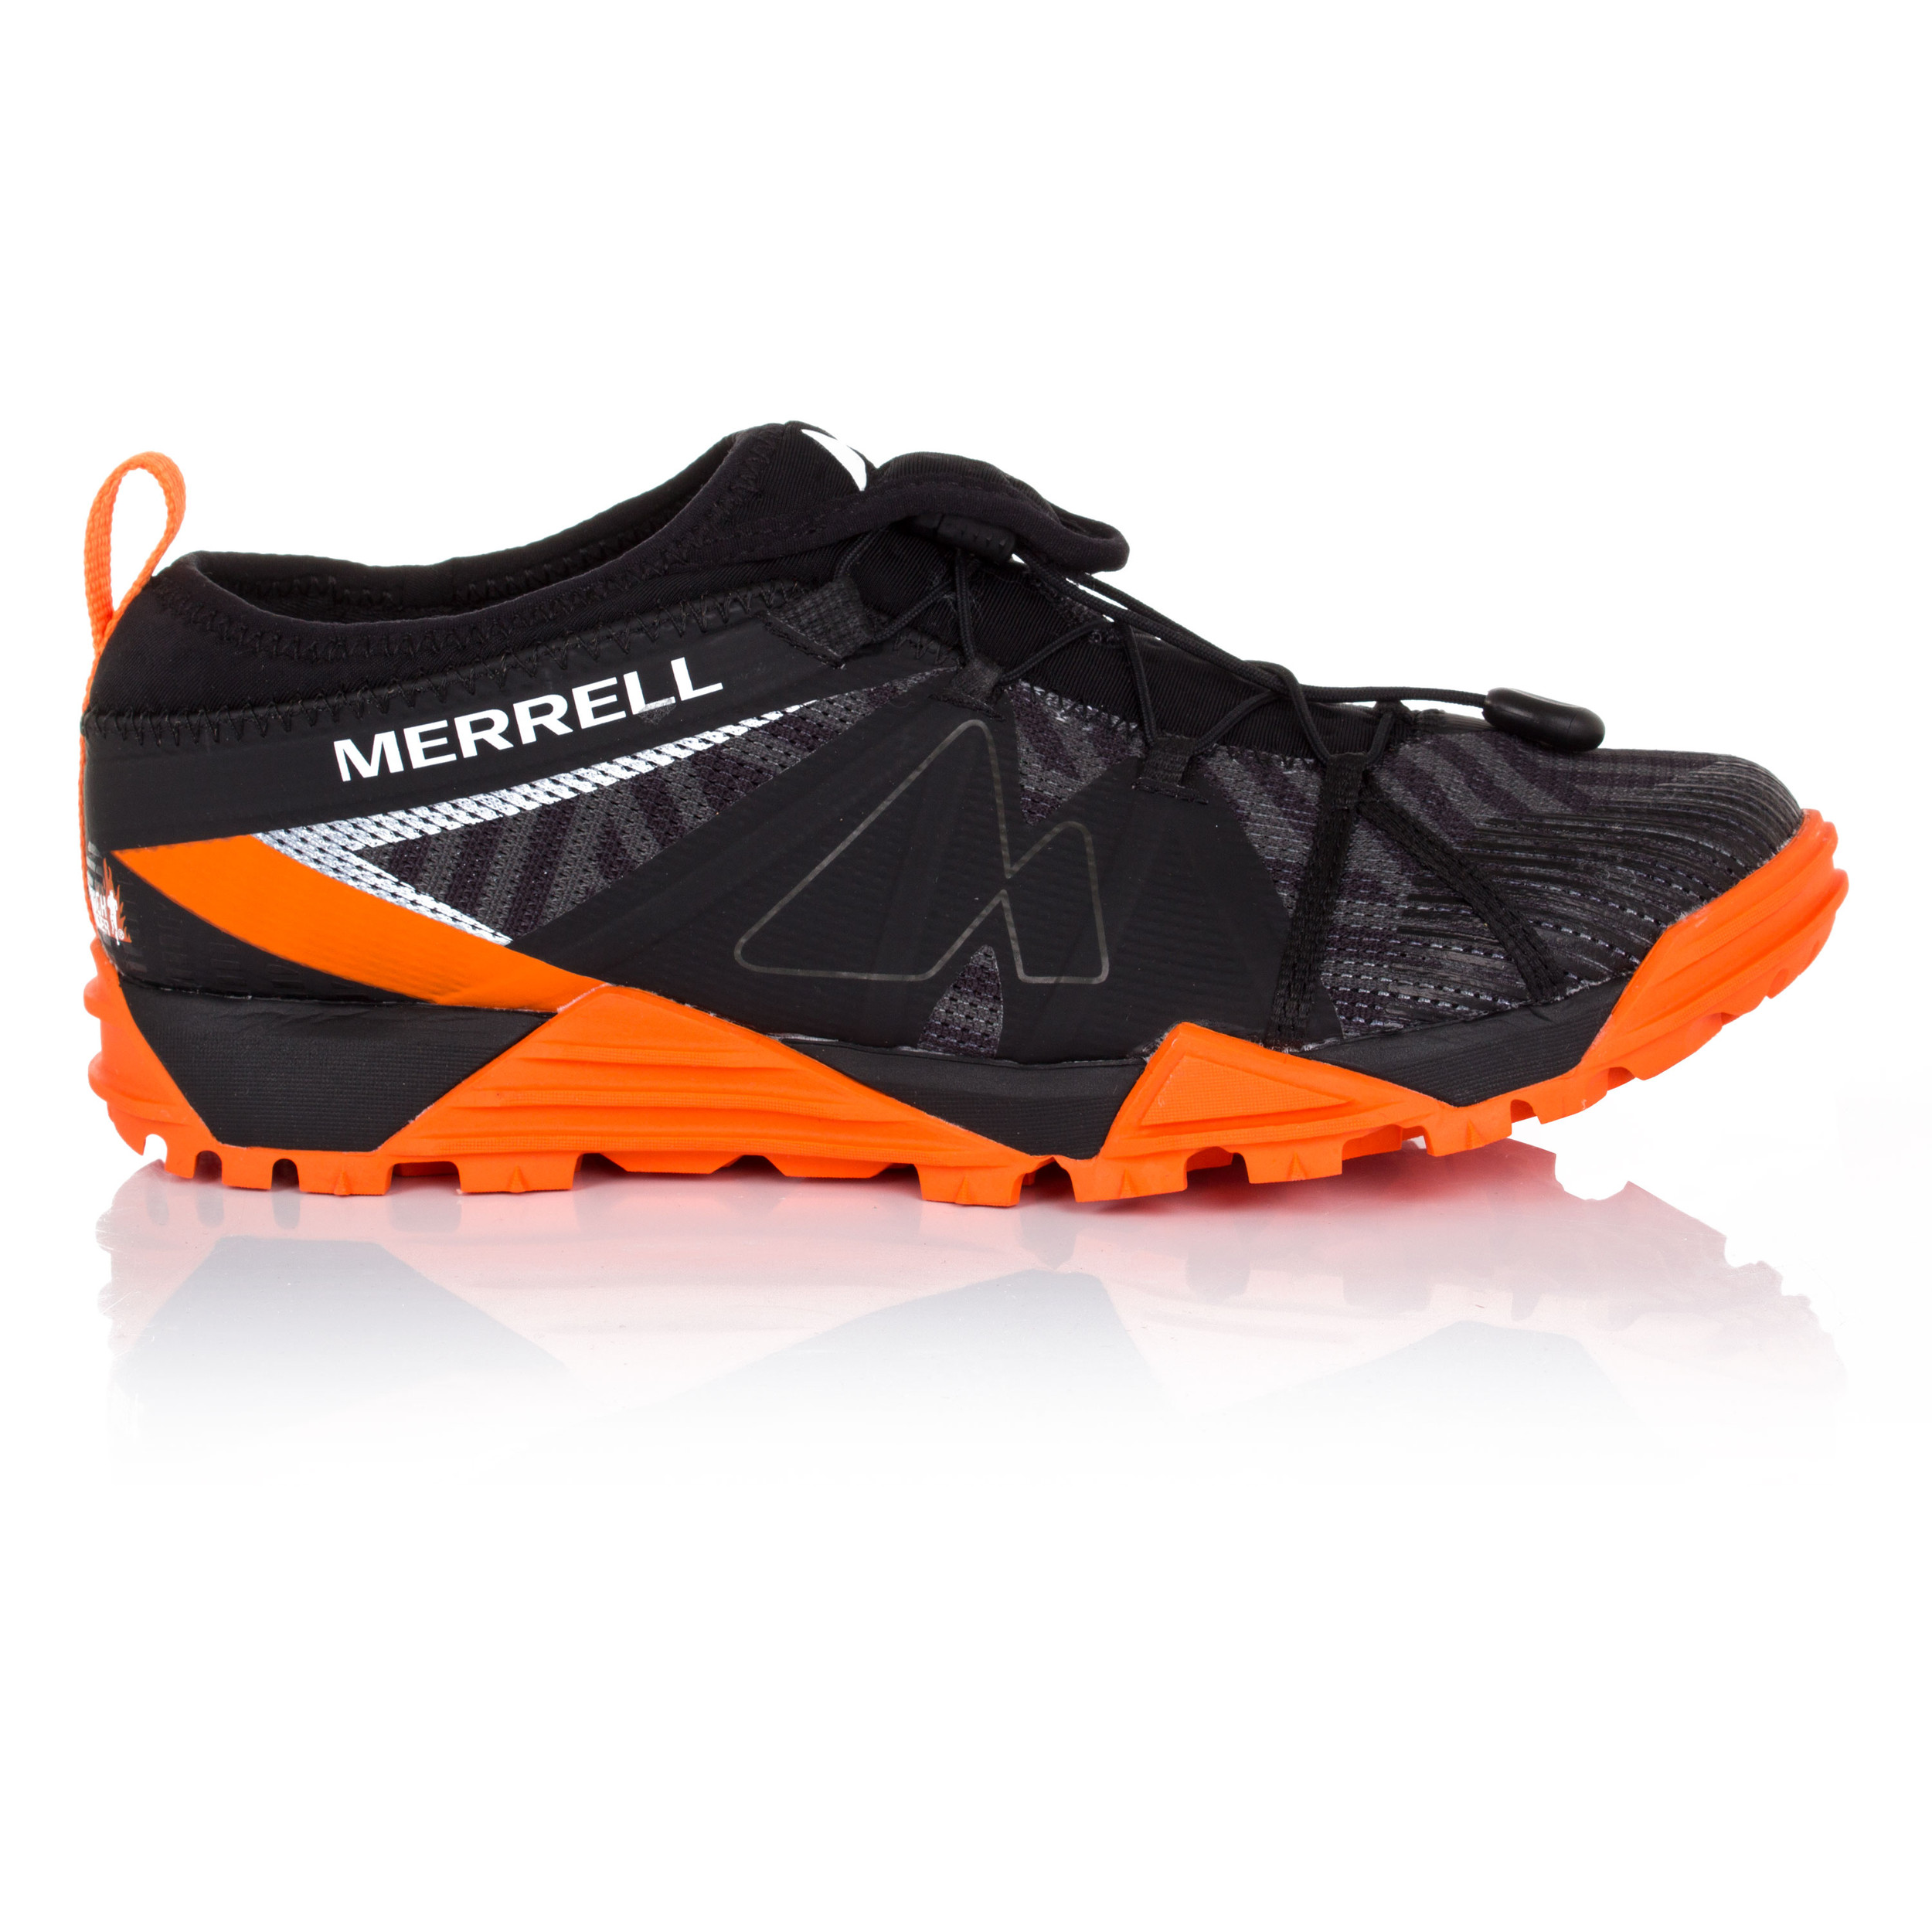 Mens Merrell Shoes Ebay